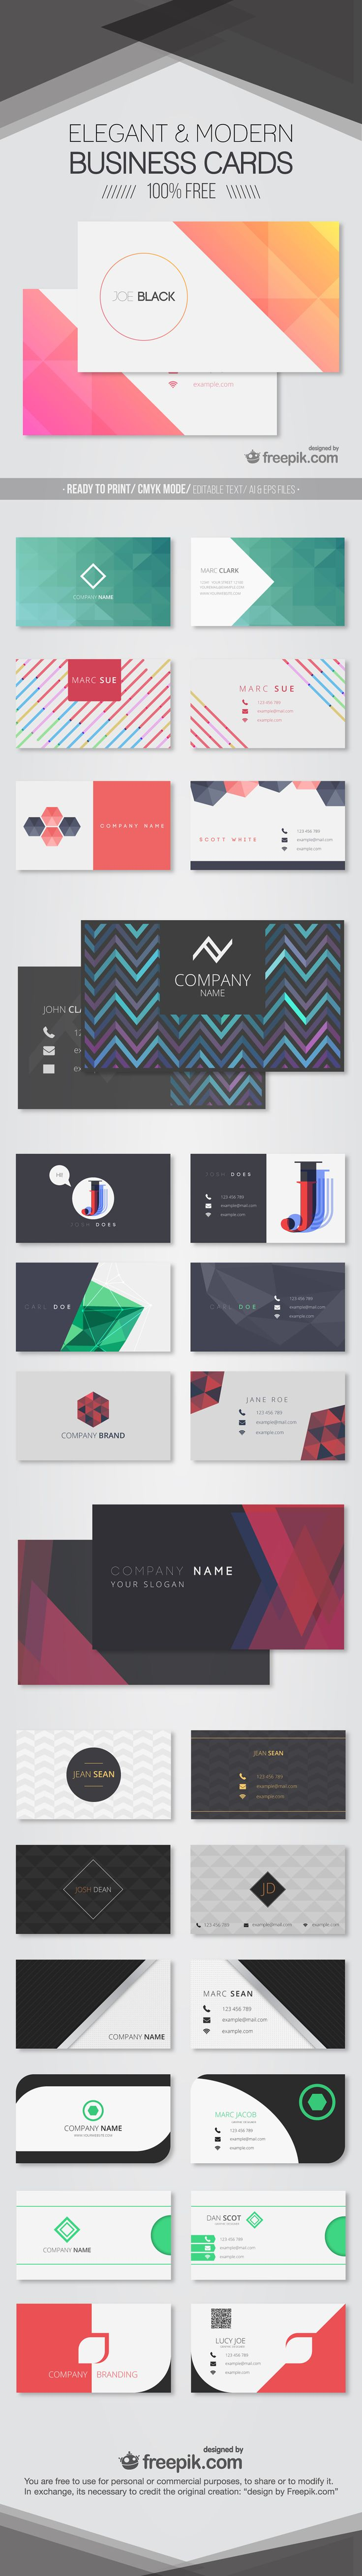 Freebie: 30 Elegant & Modern Business Card Templates